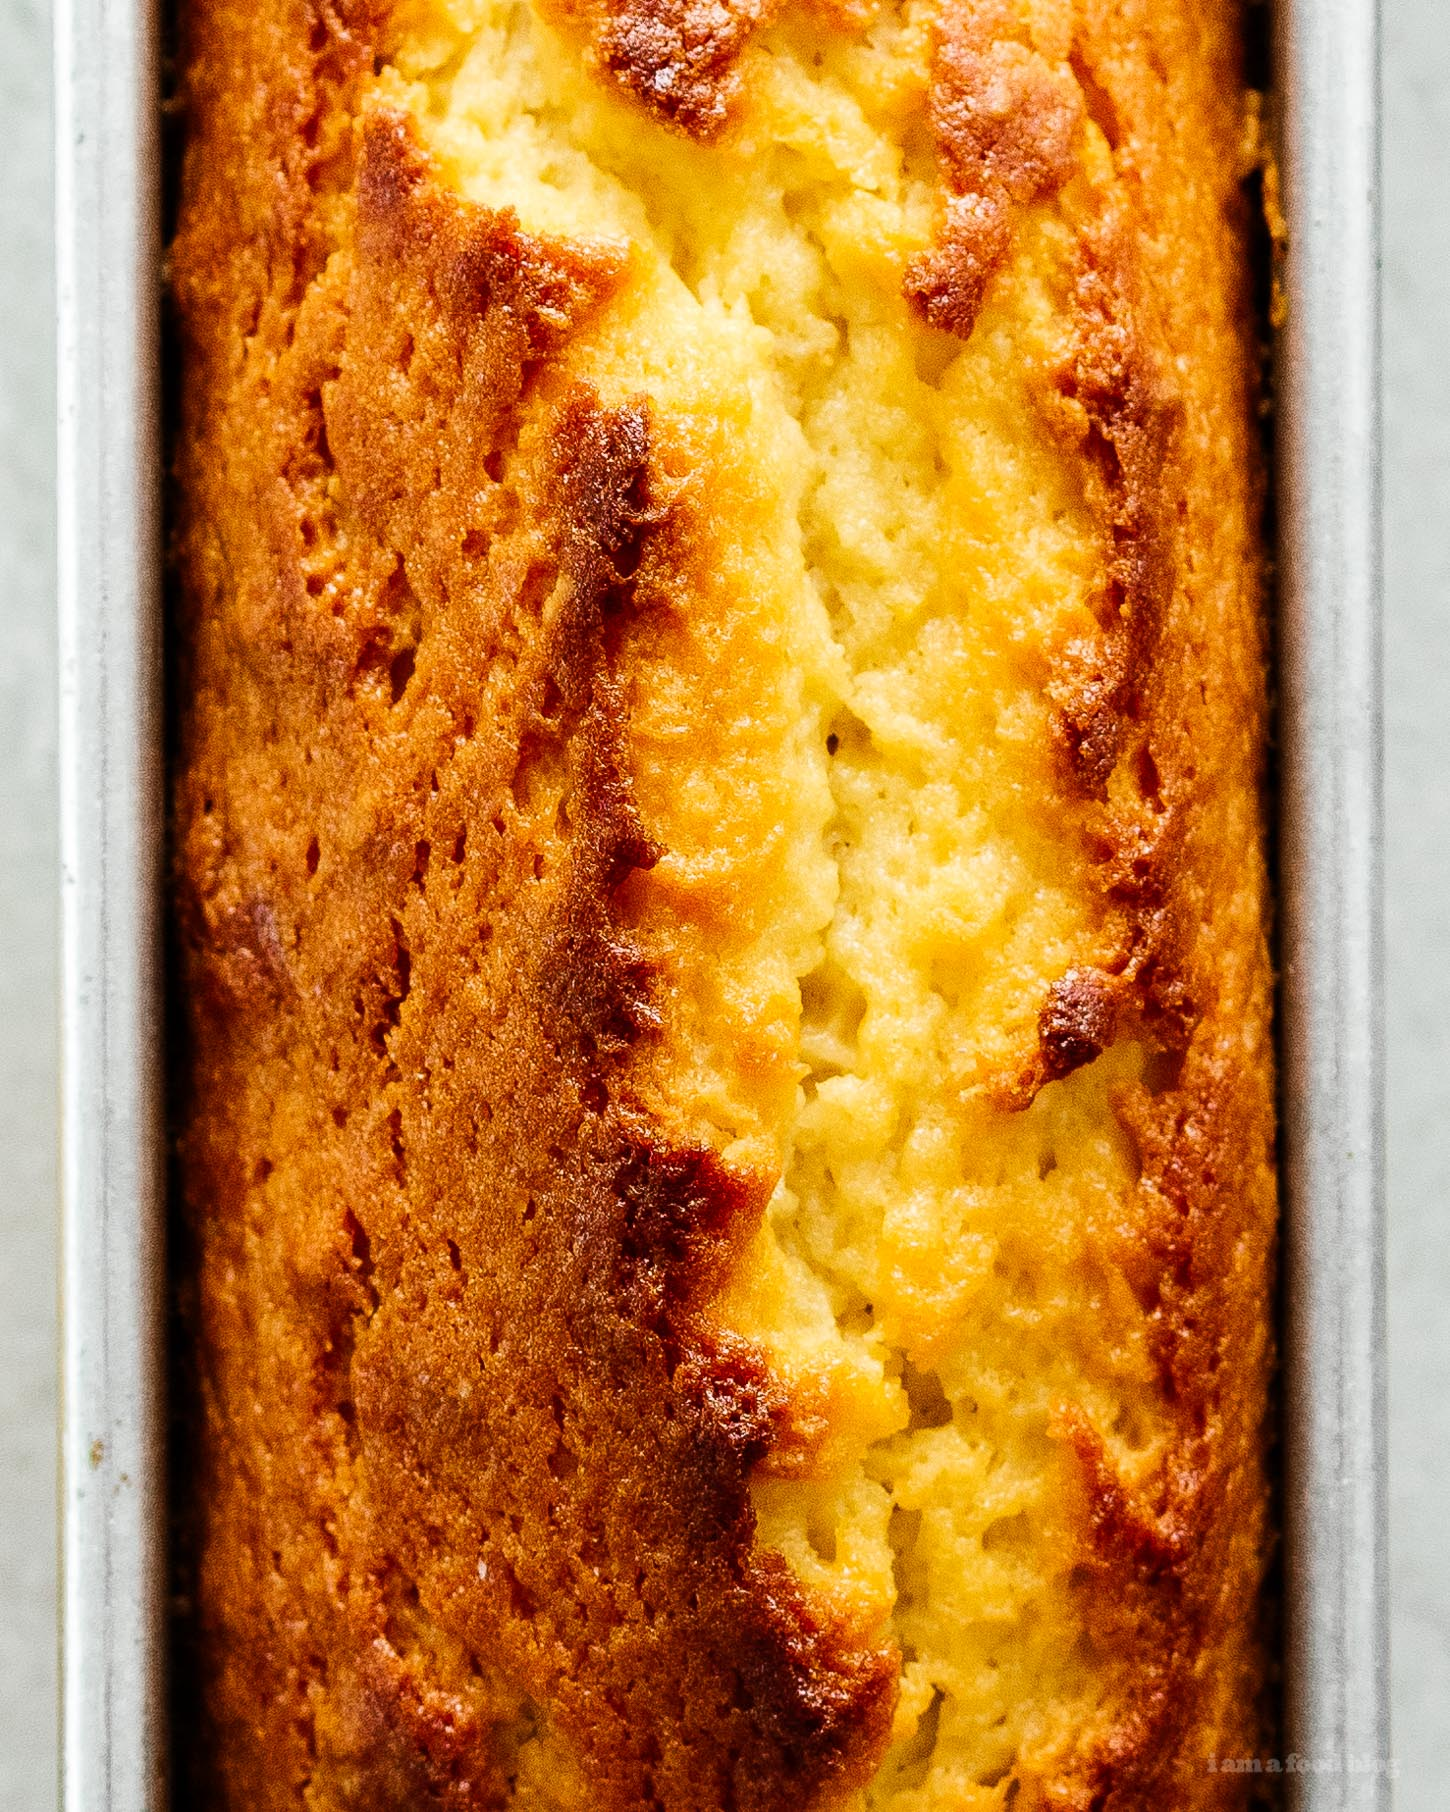 French Yogurt Lemon Loaf Cake | www.iamafoodblog.com